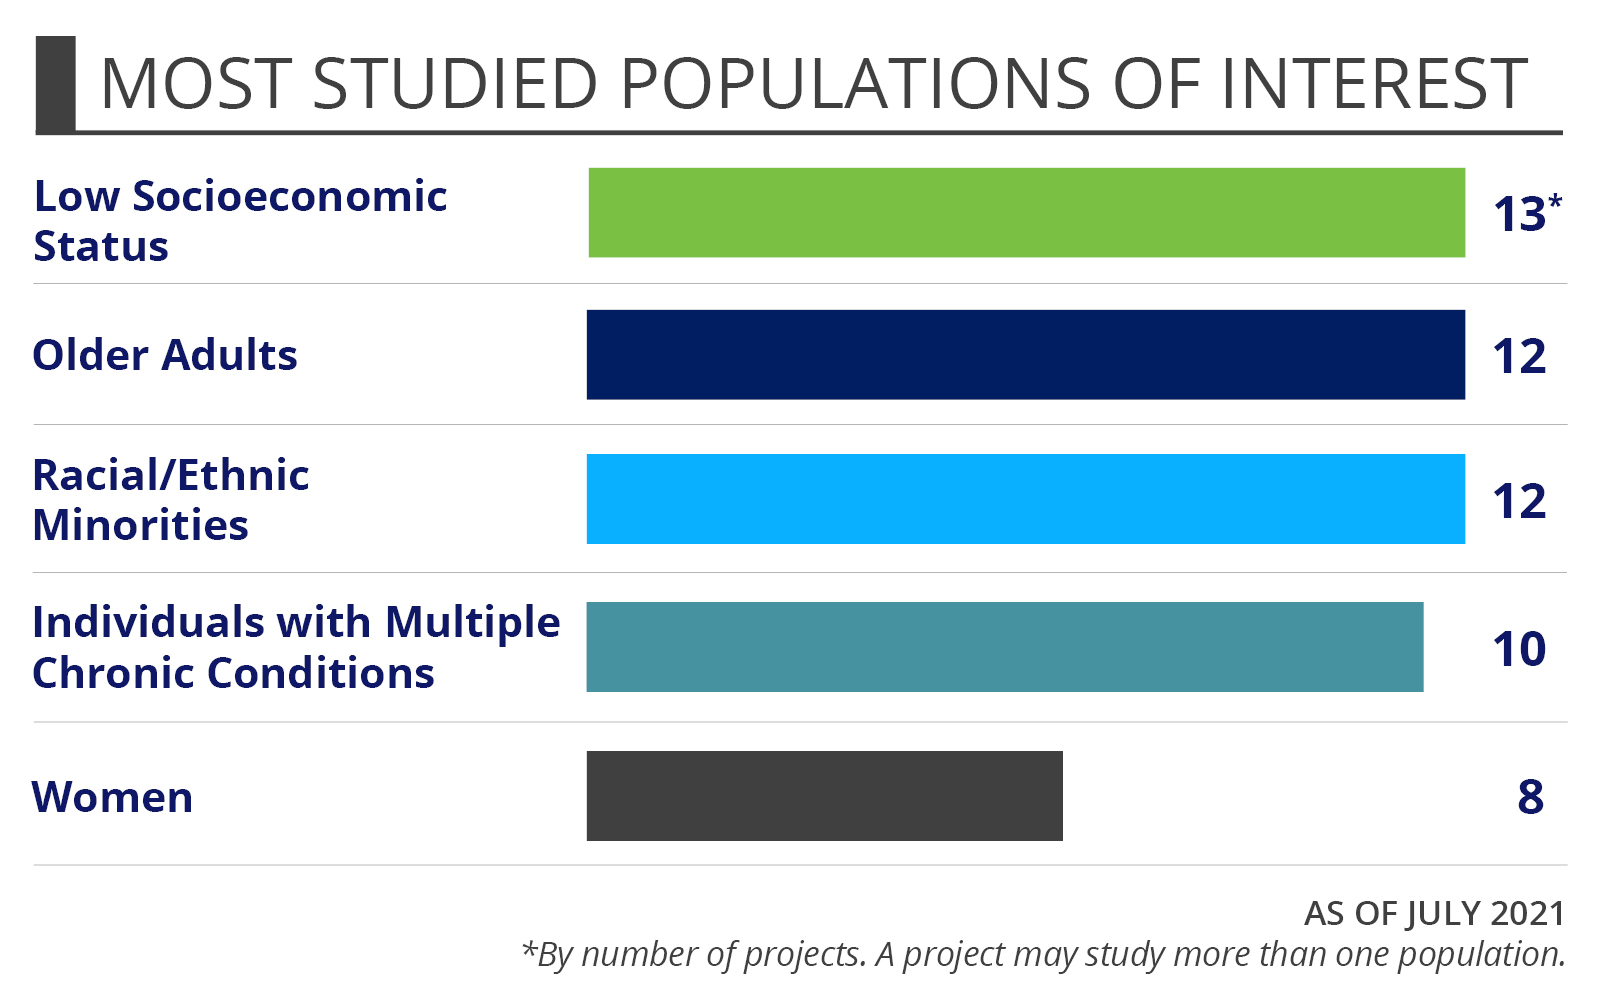 Veterans Health Portfolio Snapshot - Most studied populations of interest - Low socioeconomic status 12* - Older Adults 10 - Racial/ethnic minorities 10 - Individuals with multiple chronic conditions 9 - Women 6 - As of November 2020. - A project may study more than one population.